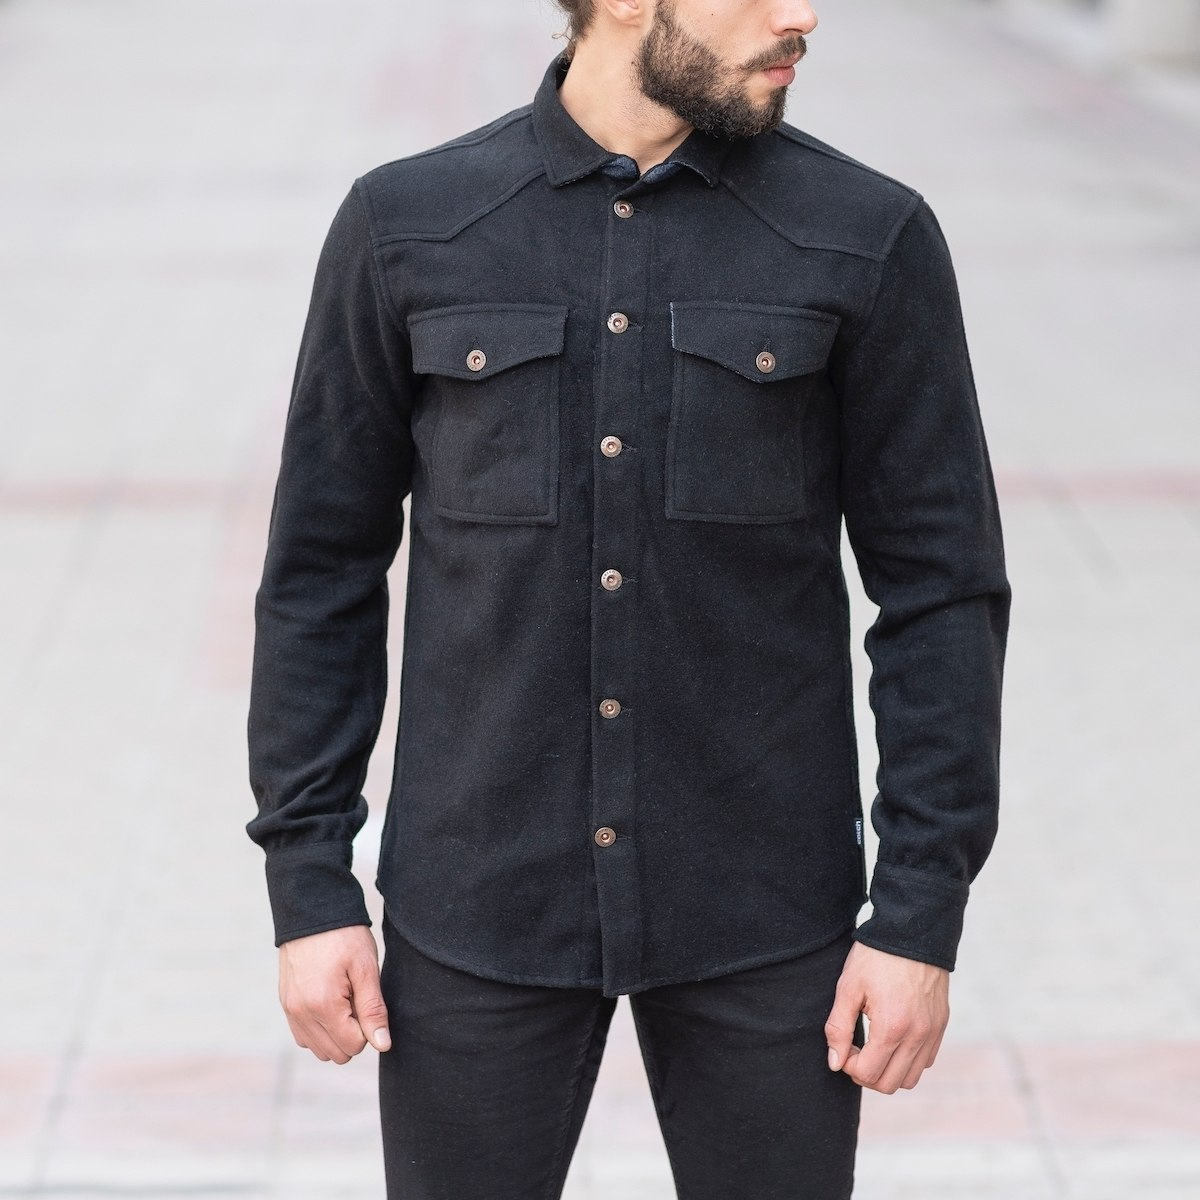 Men's Woolen Jacket-Shirt...